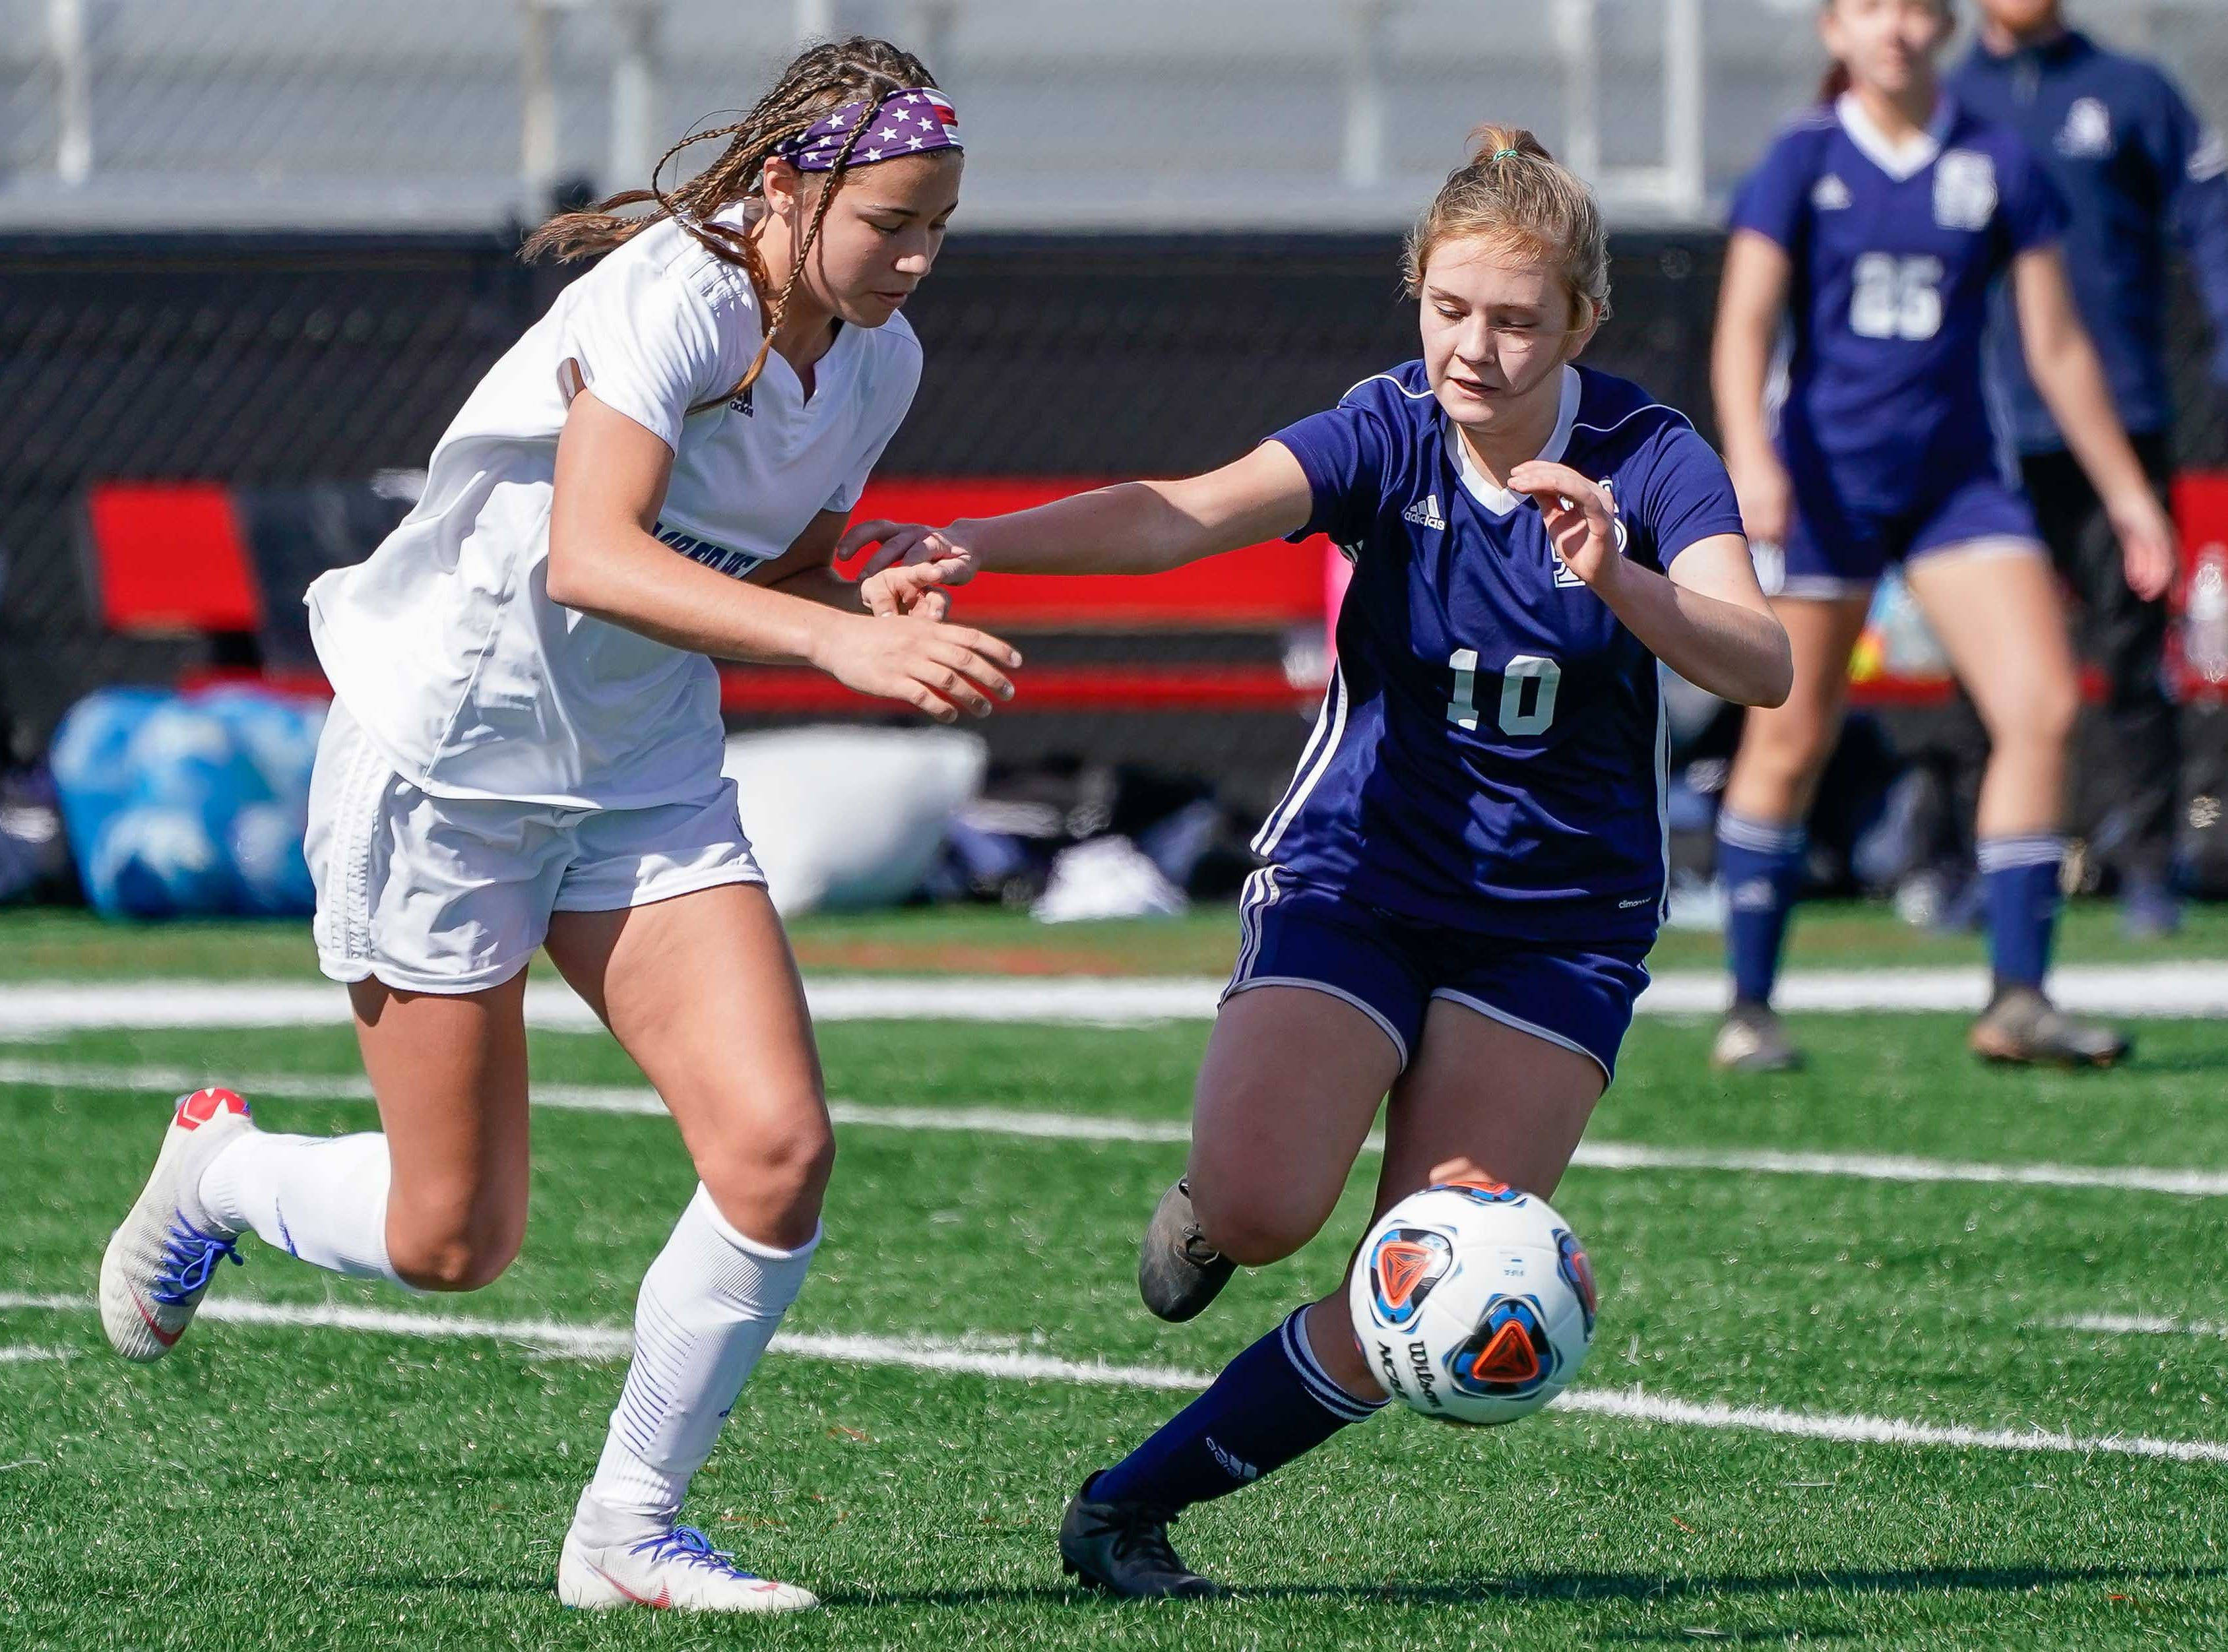 St. Andrew's Kate Rodenmeyer (10) tries to stop Sacred Heart's Graciella Falla during the MHSAA 1A,2A,3A  GIrls Soccer Championships held at Brandon High School in Brandon, MS, Saturday February 9, 2019.(Bob Smith-For The Clarion Ledger)